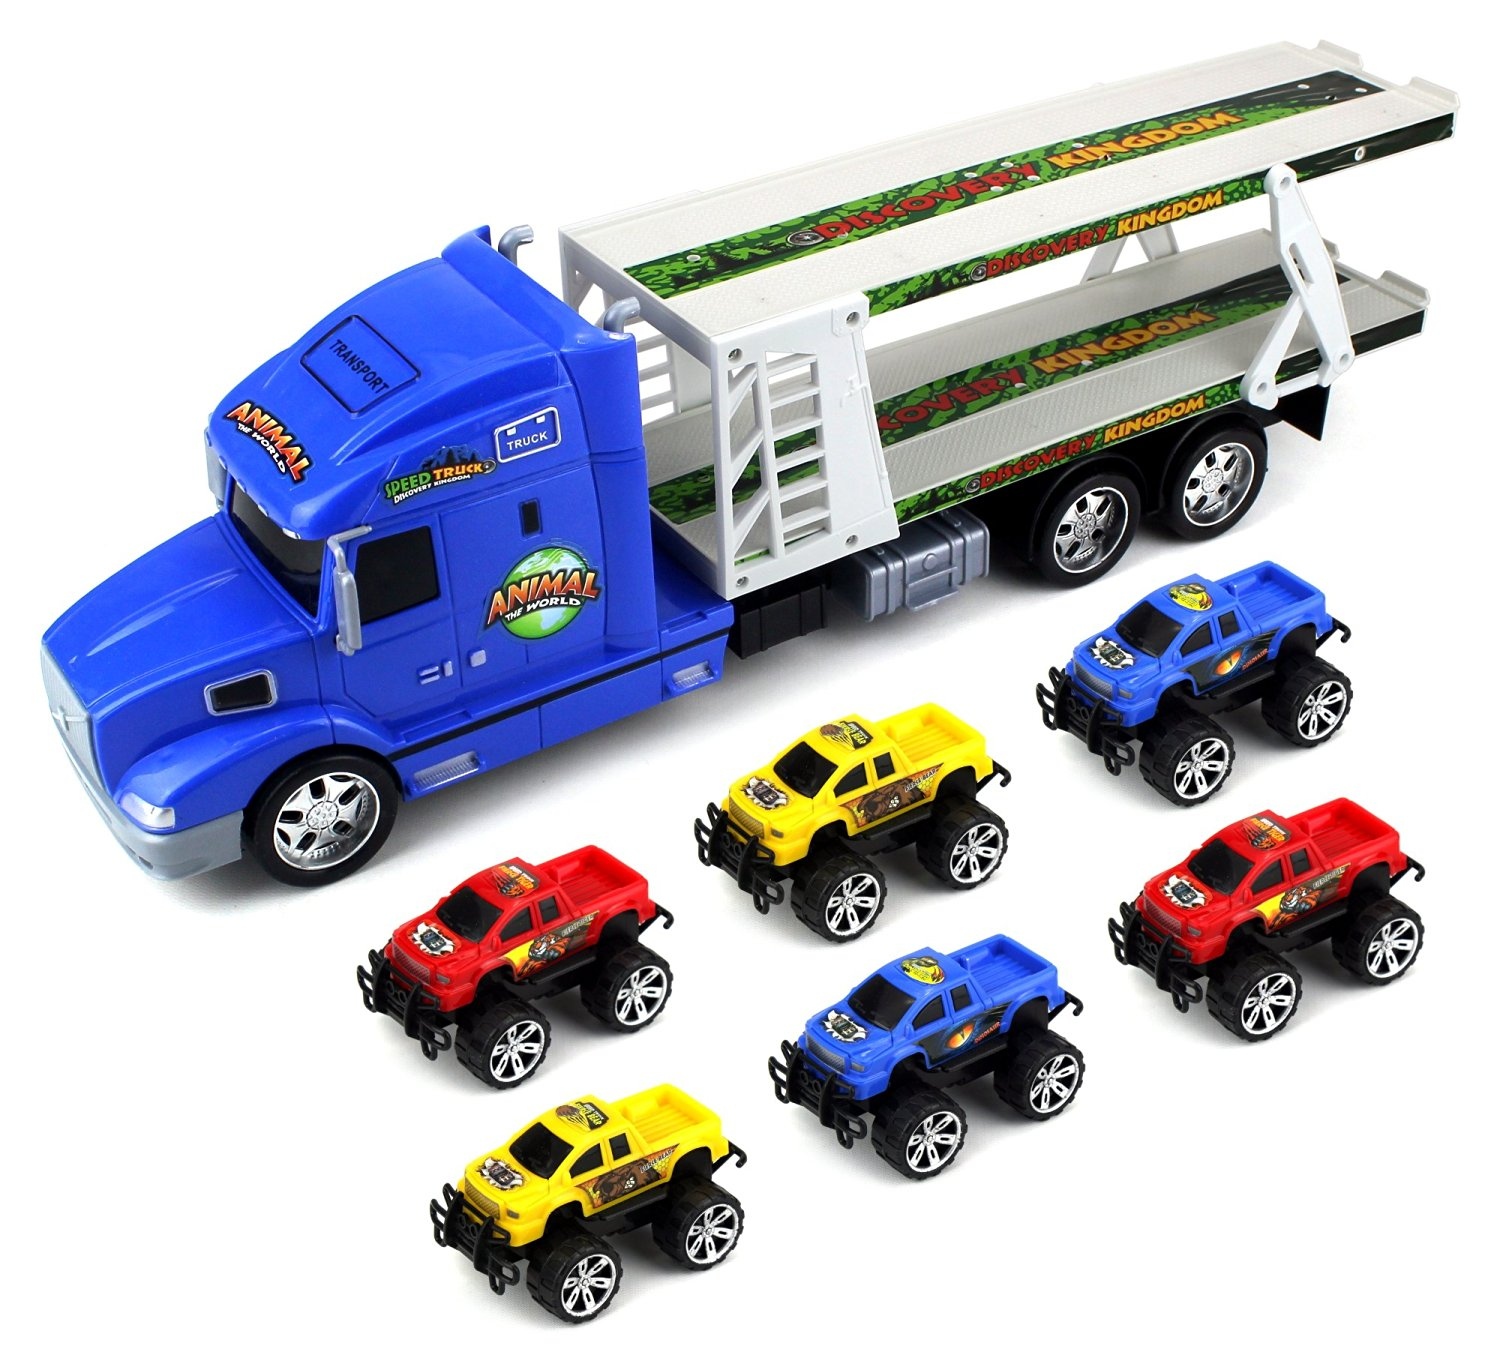 Animal World Truck Trailer Children's Friction Toy Transporter Truck Ready To Run 1:24... by Velocity Toys